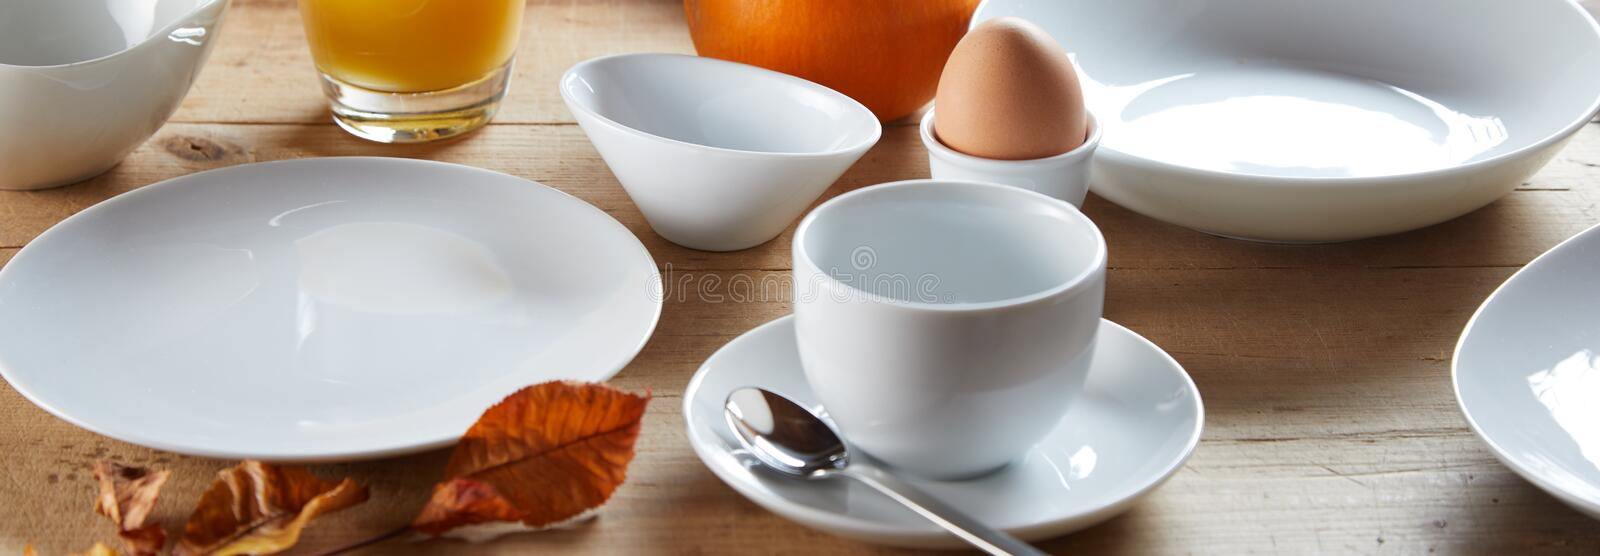 Bowls and cup of white ceramic for breakfast royalty free stock image